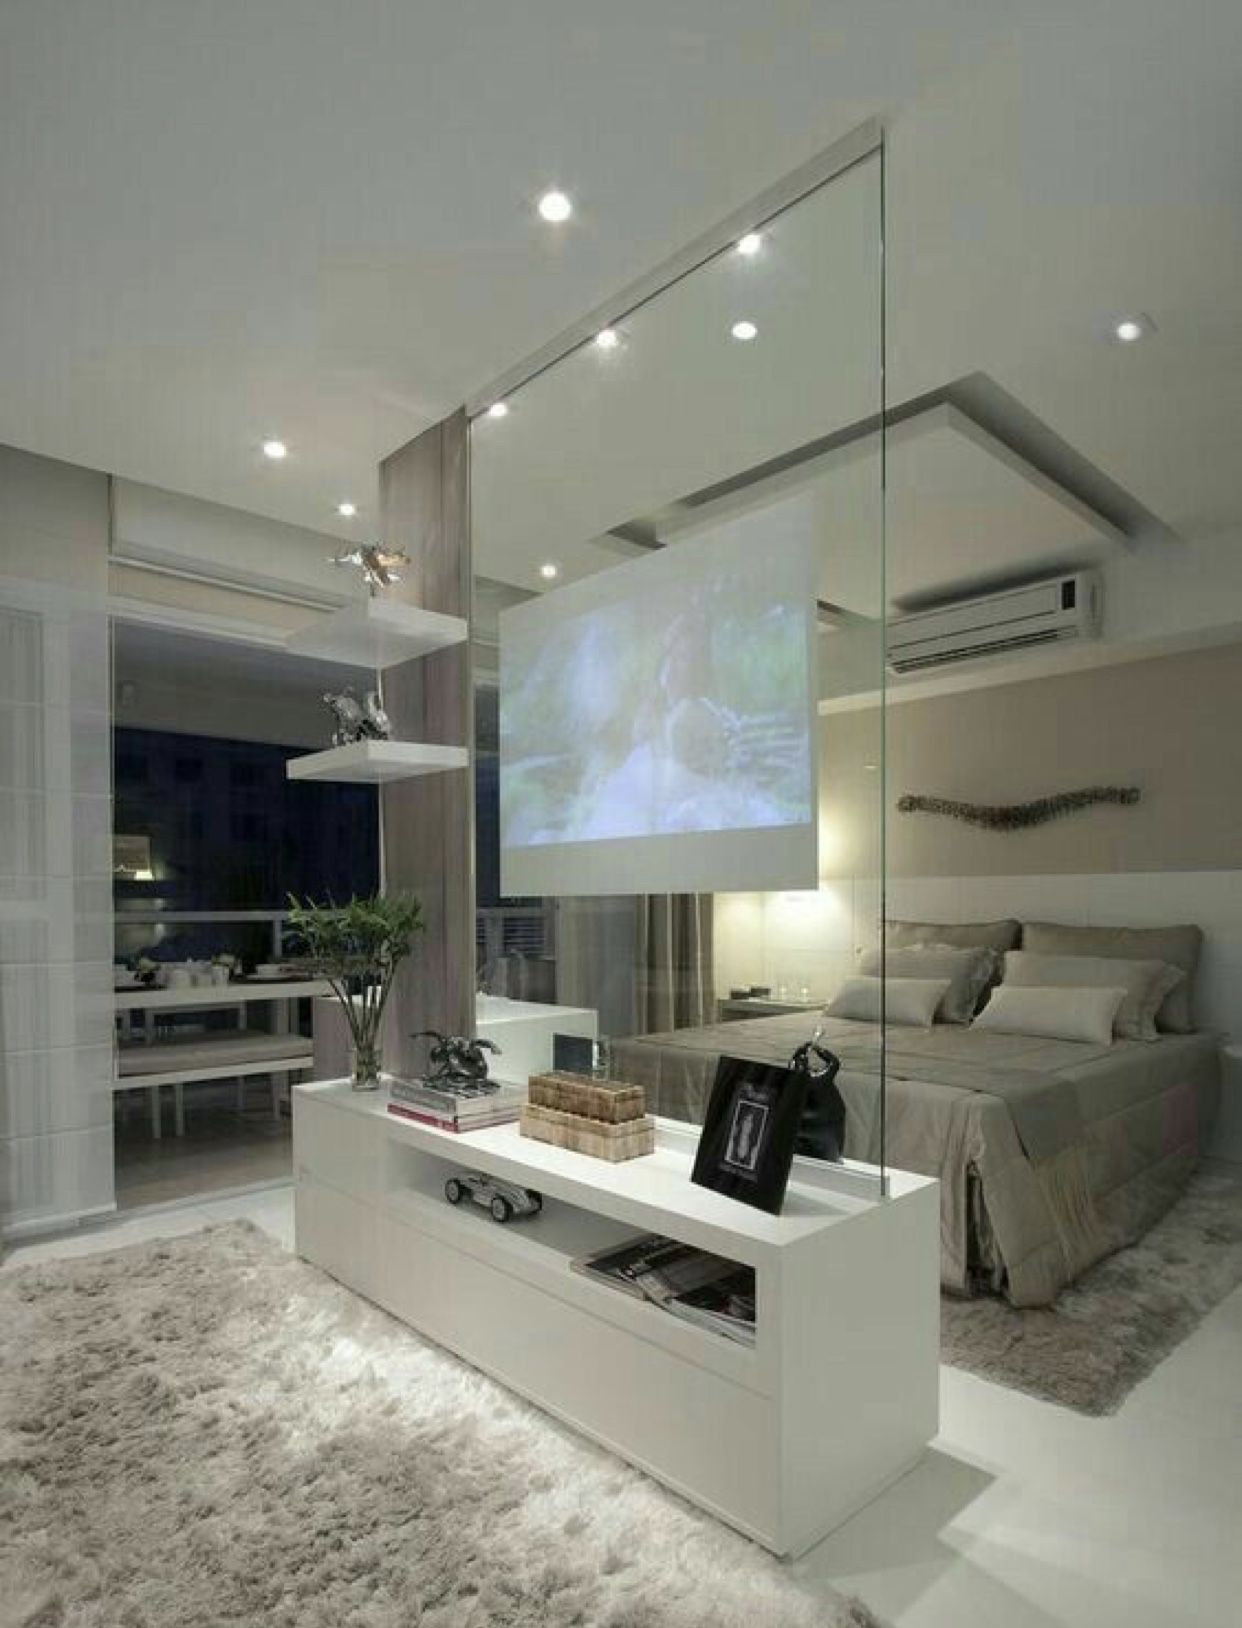 Pin By Baddie House On Room Ideas House Design Home Luxurious Bedrooms